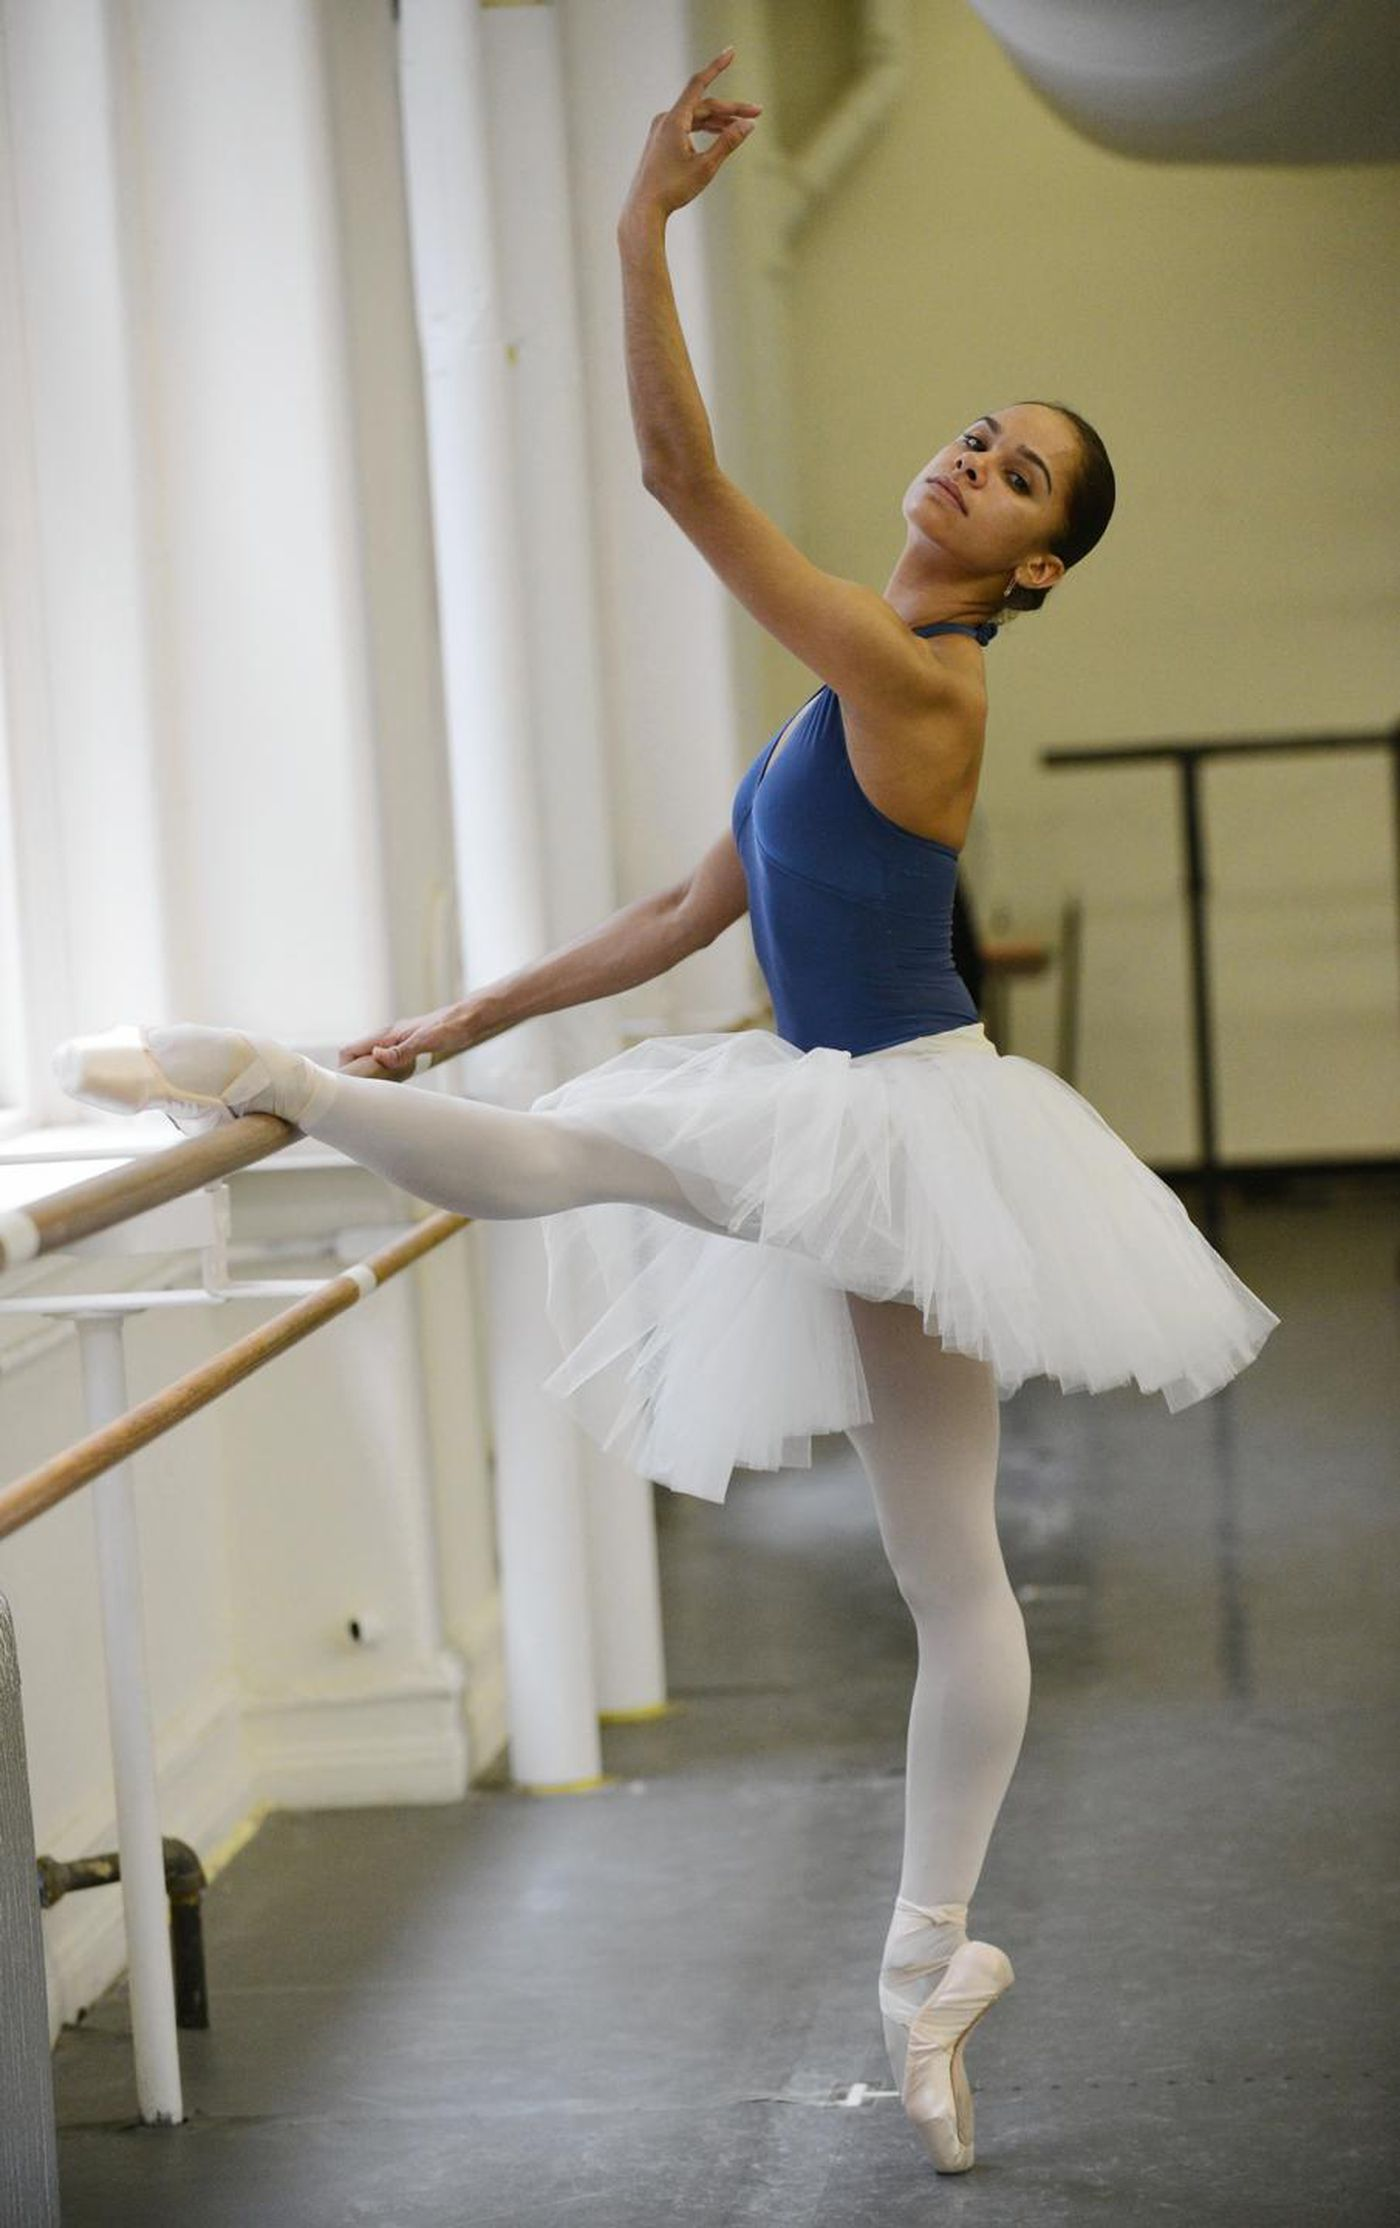 Misty Copeland Is Attracting New Au Nces To Ballet